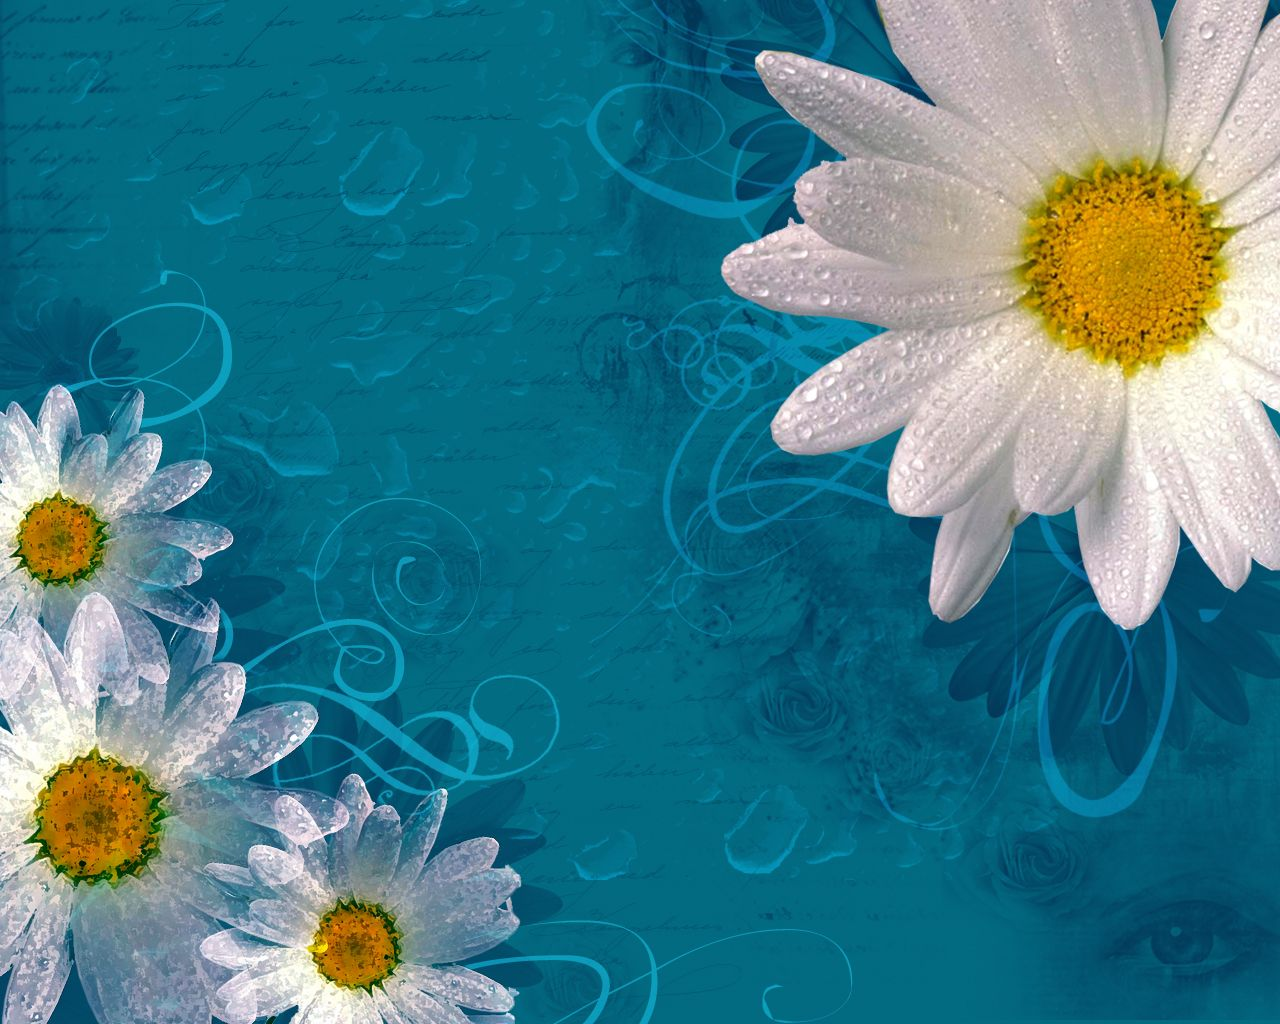 backdrops for photography | Delicate daisies flowers frame 800x600 pixel PPT Backgrounds for ...